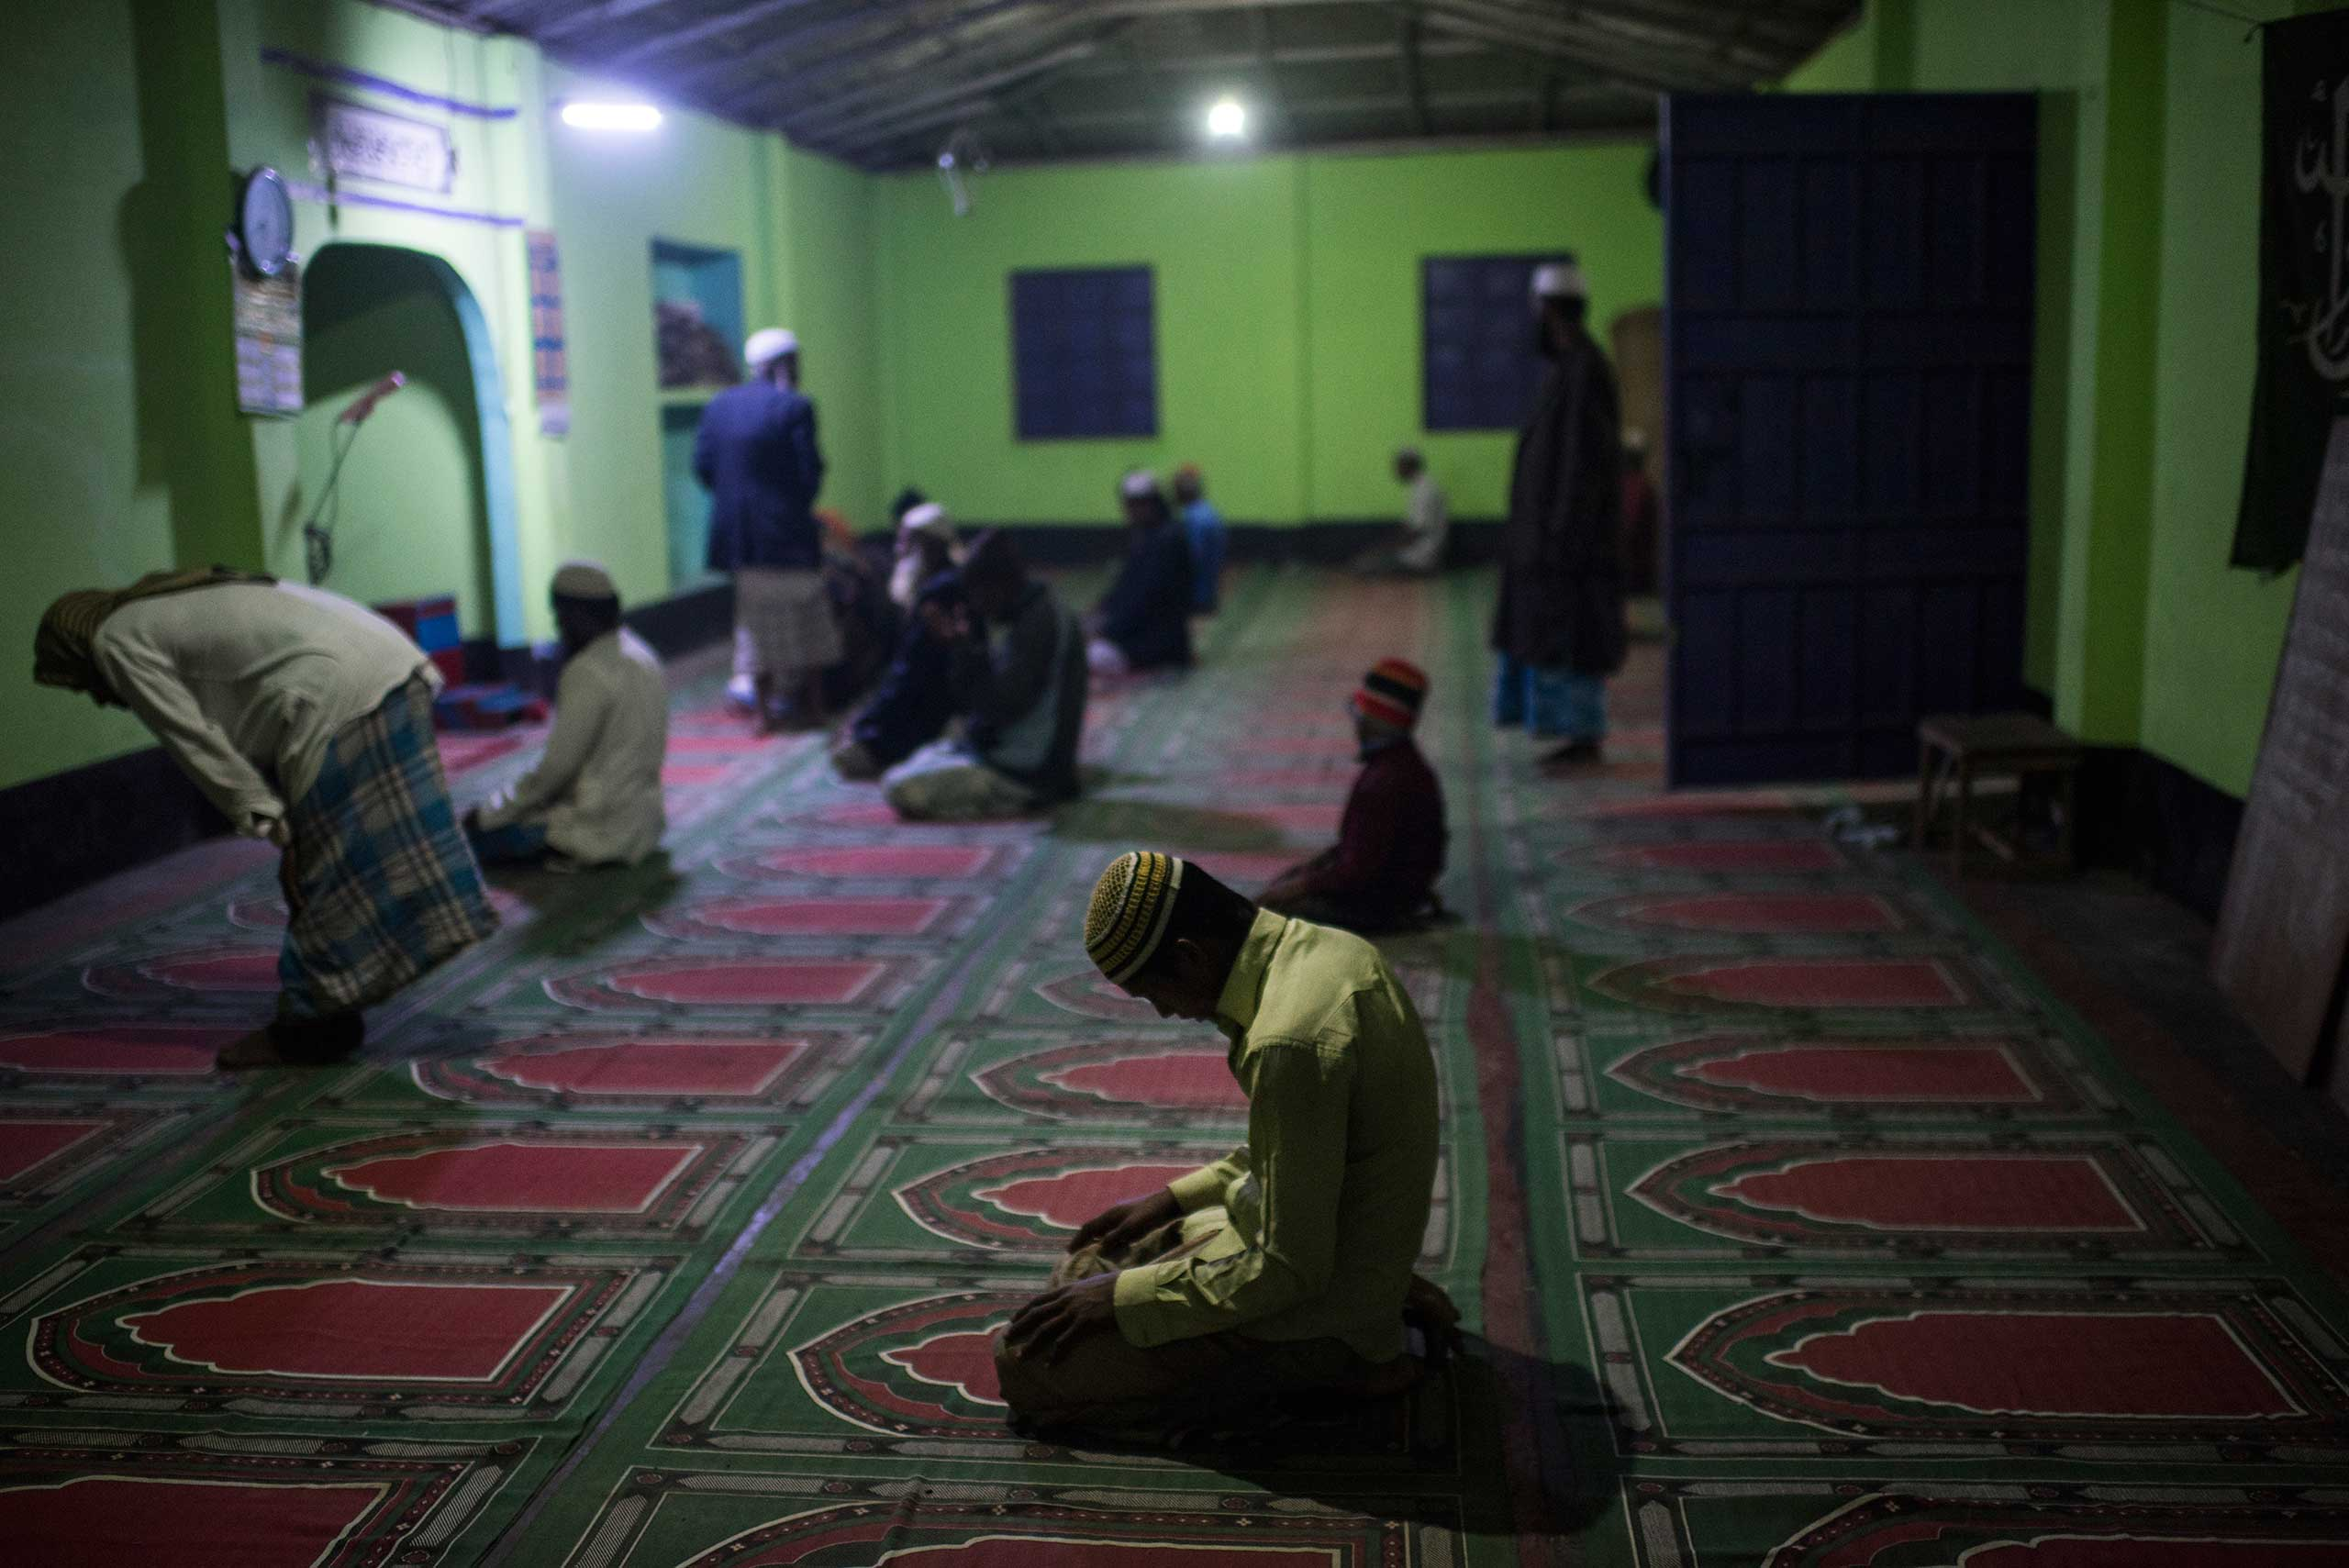 Rohingya men pray at a mosque in Shamlapur, a Rohingya settlement, outside of Cox's bazaar. While there are very few opportunities for Rohingya children to go to school, most children do study the Koran at the local madrassa with the Imam of the community, in  Bangladesh, Jan. 16, 2016. The Rohingya are systematically marginalized, and forced into formal and makeshift camps across Bangladesh and Myanmar.